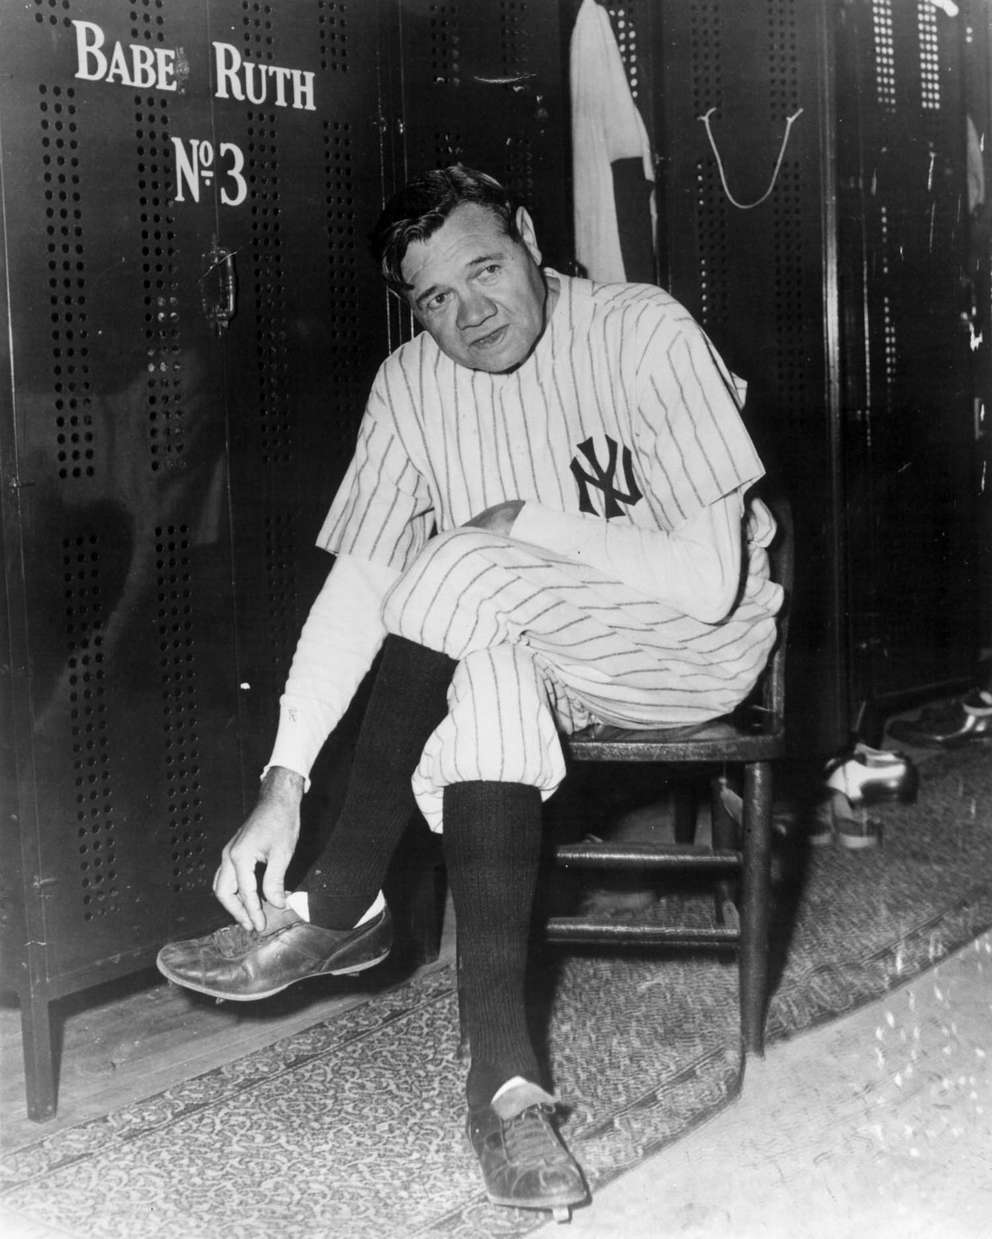 Babe Ruth, the great New York Yankees' slugger. Times.